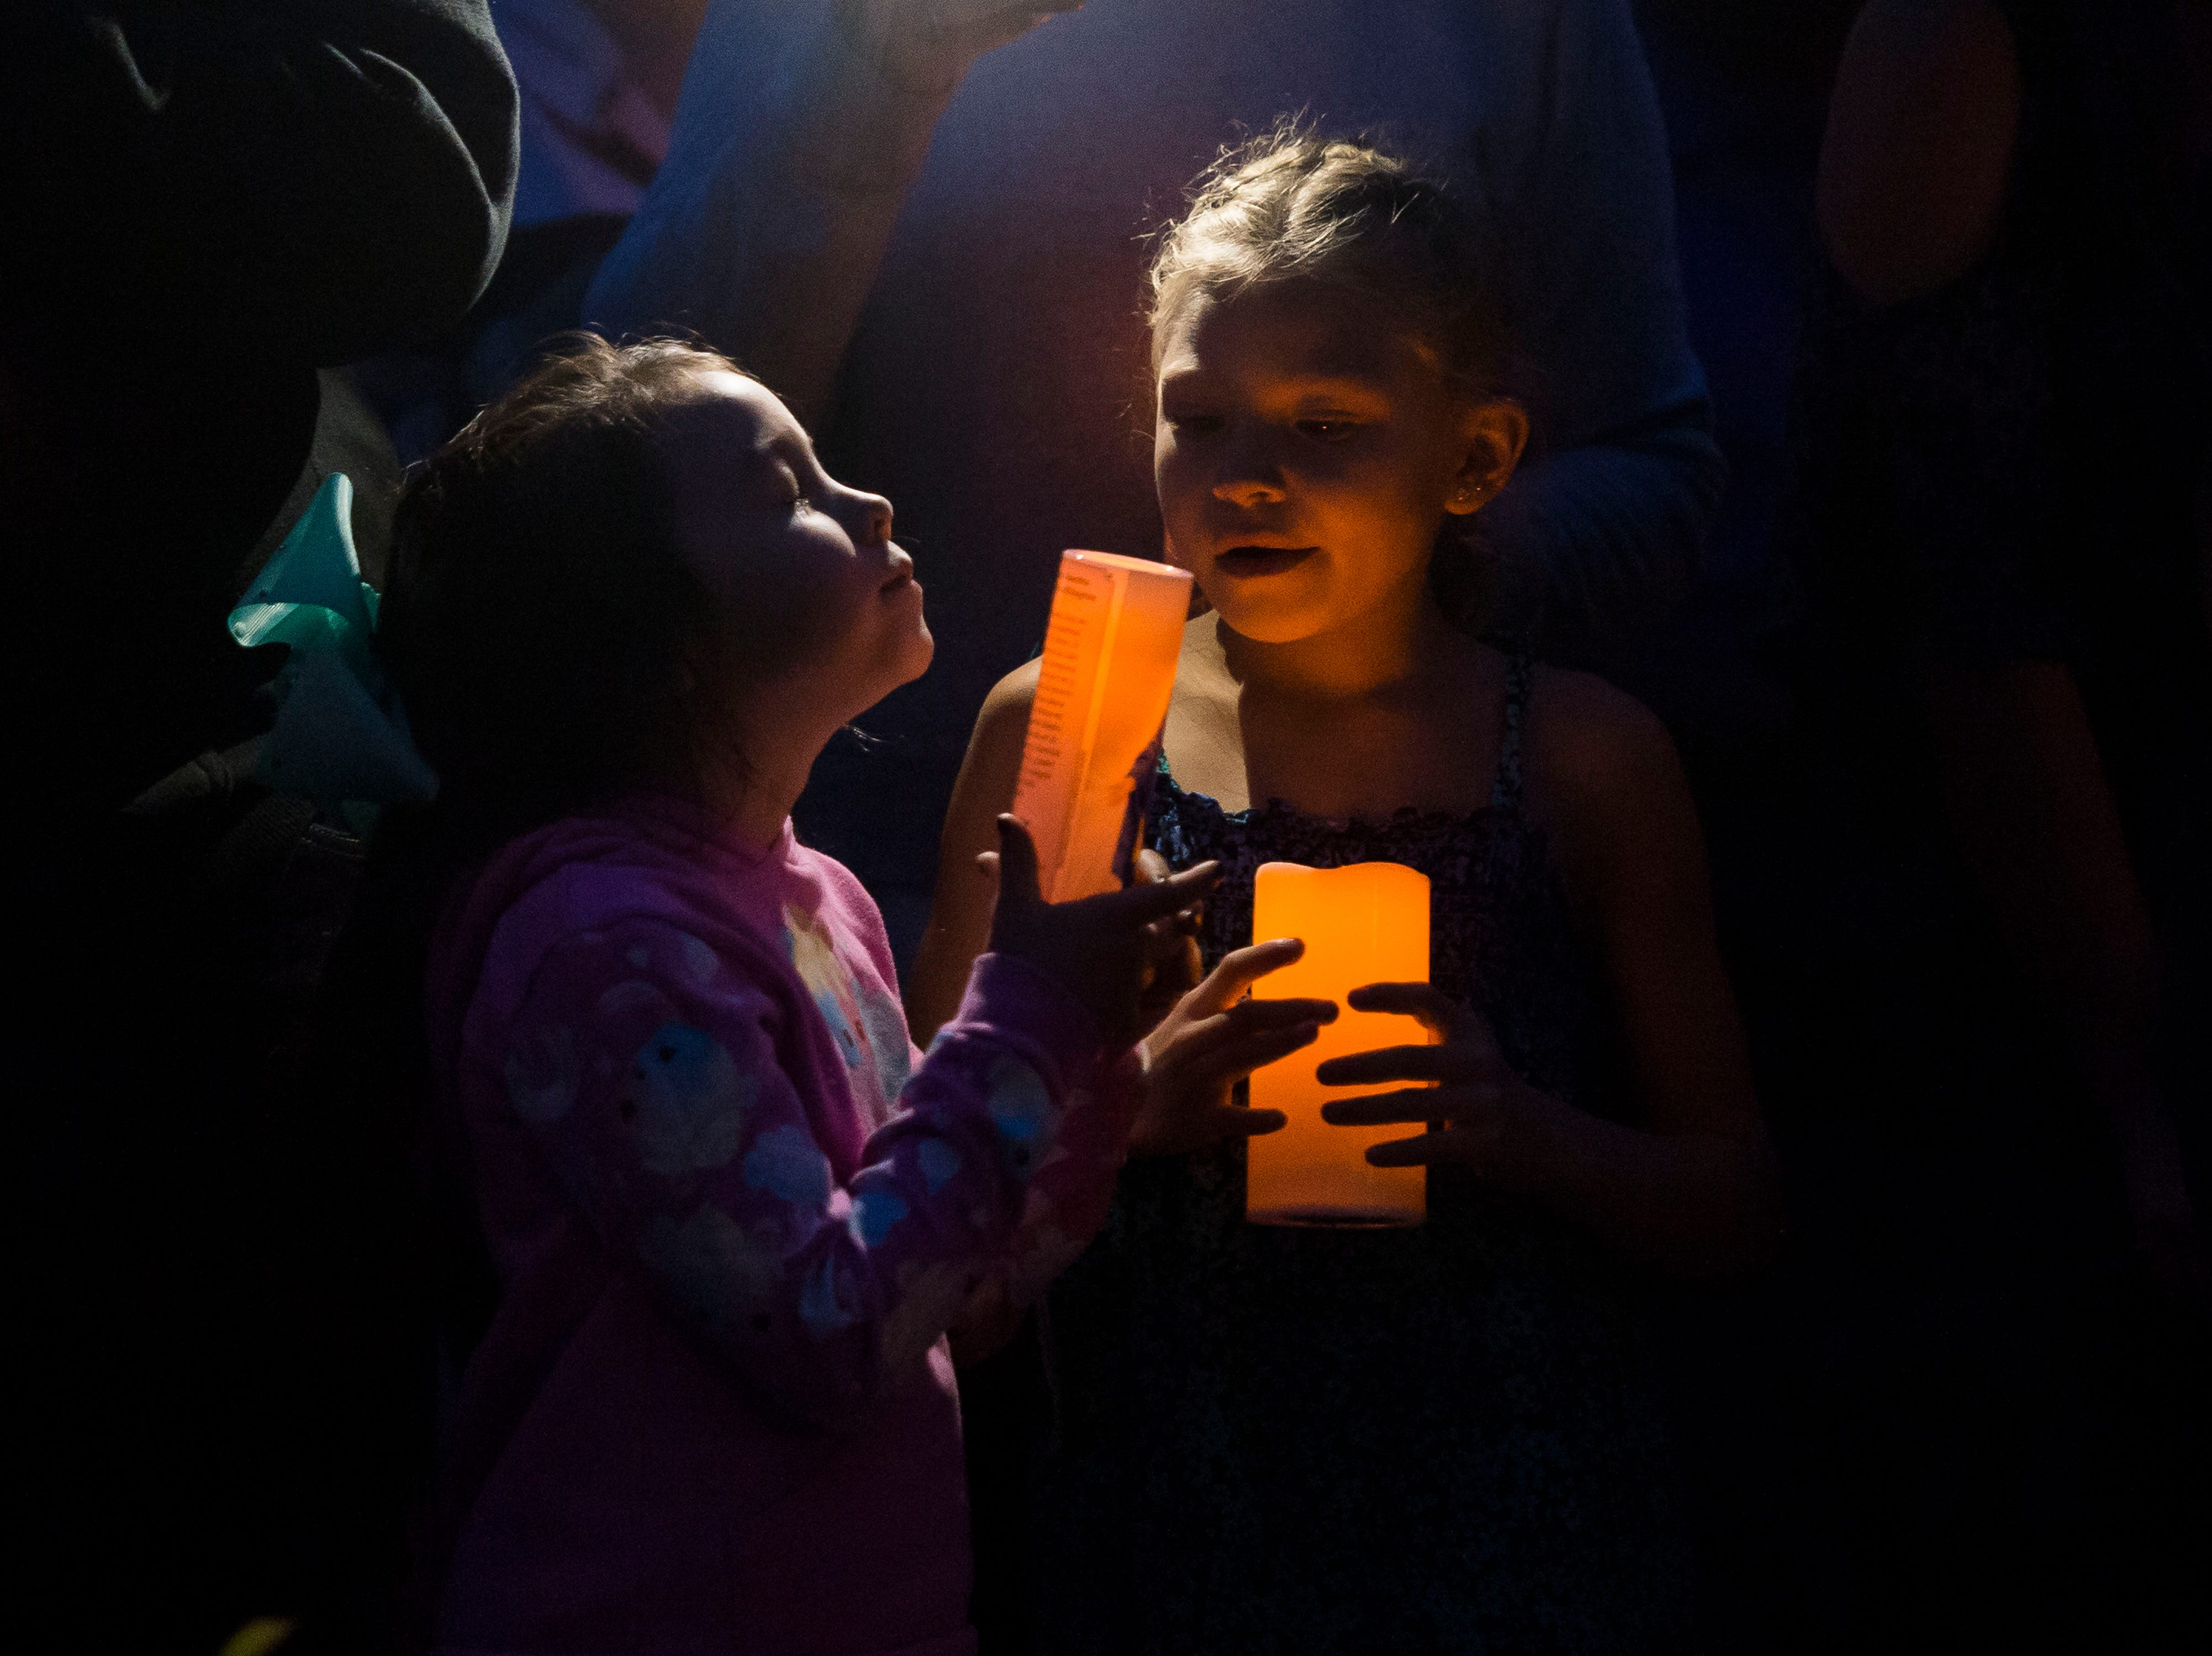 Children participate in a candle-lit vigil for the slain Shanann Watts and her two daughters, Bella, 4, and Celeste, 3, in front of the Watts' family home on Friday, Aug. 17, 2018, in Frederick, Colo.